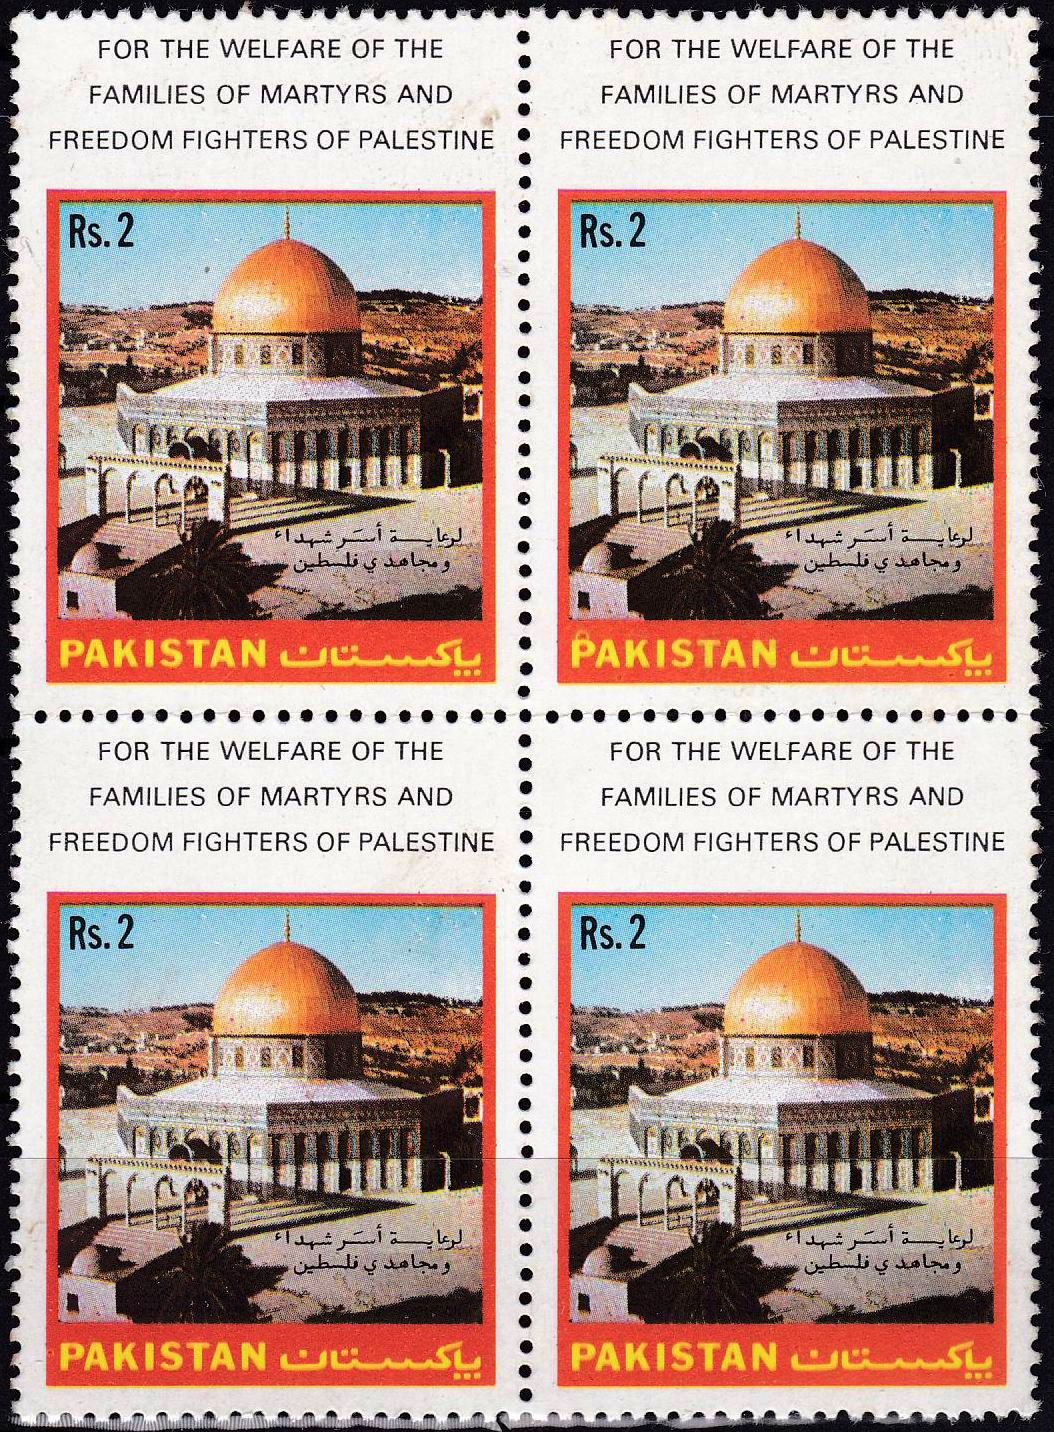 Pakistan Stamps 1981 Palestinian Welfare Dome Of Rock